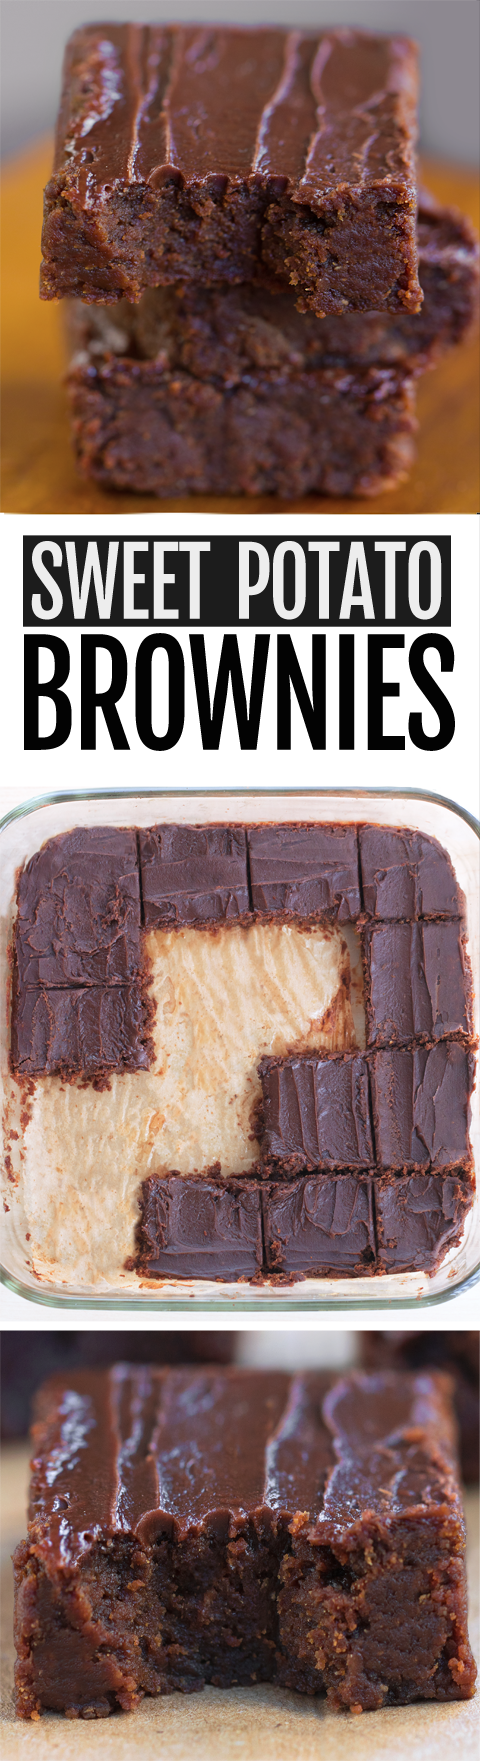 Super Healthy Sweet Potato Brownies (Vegan)